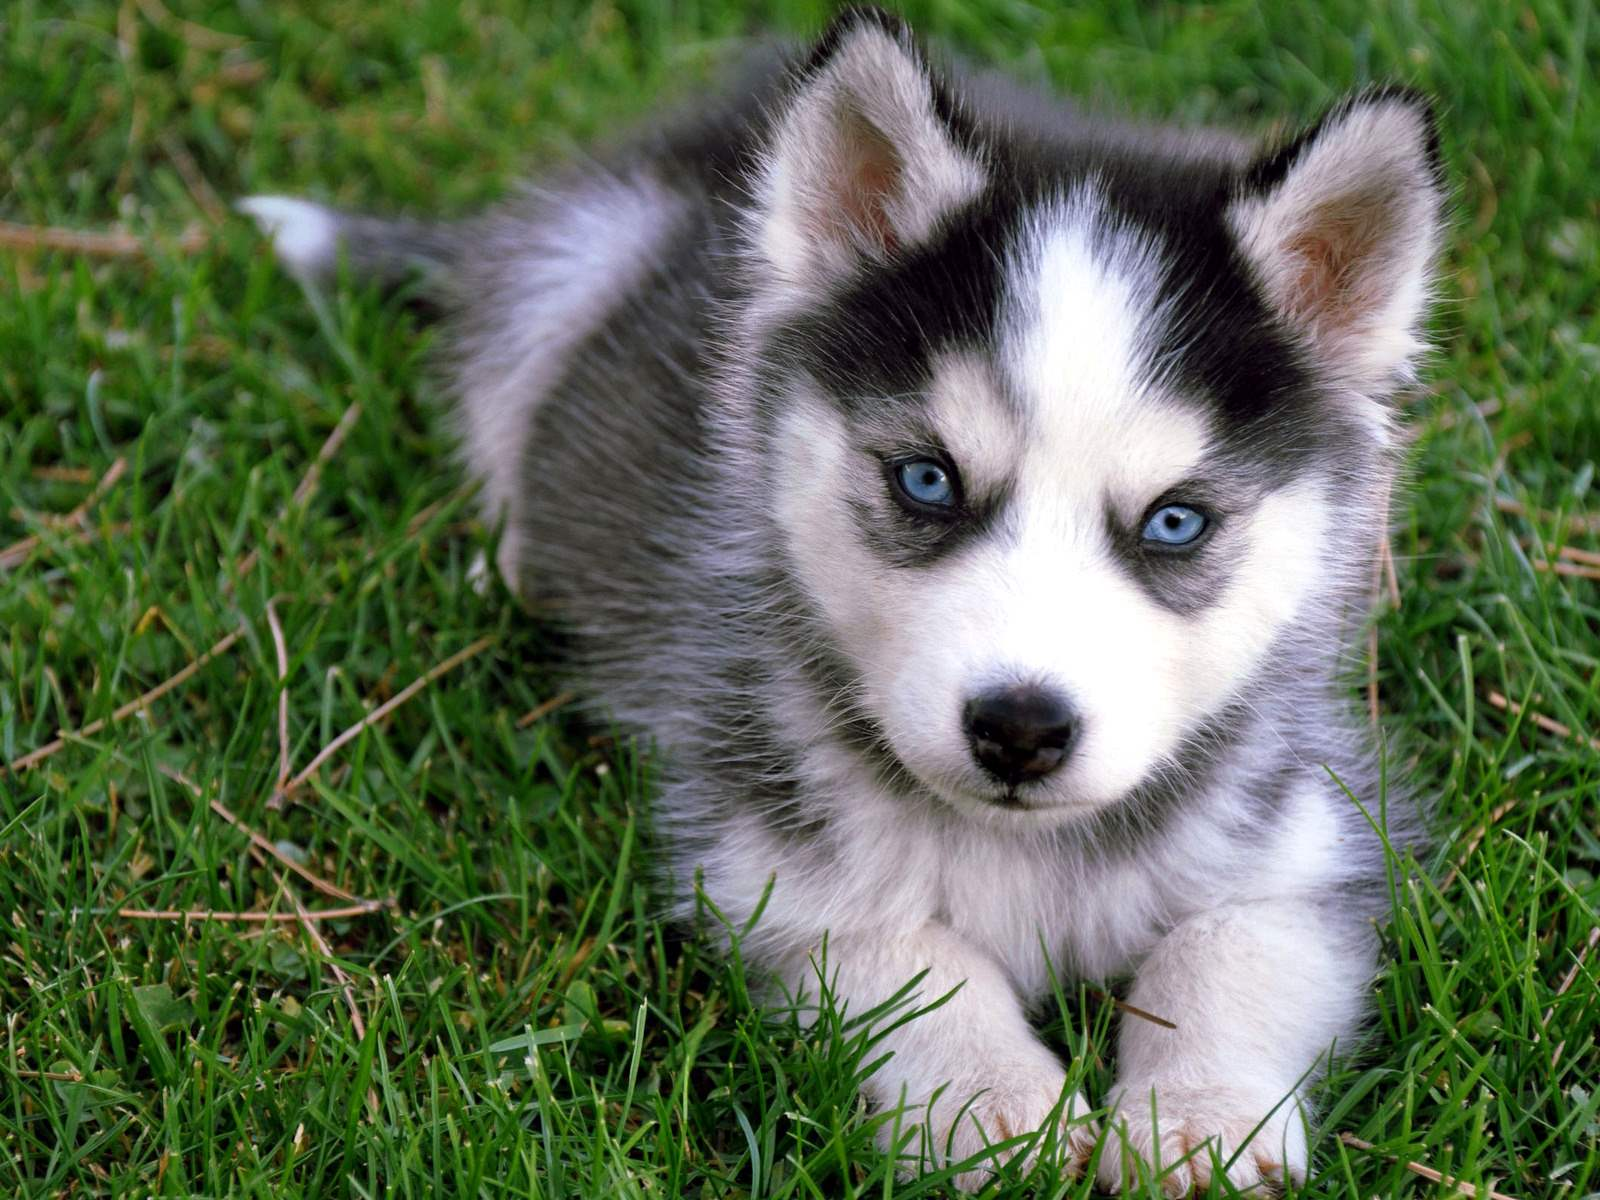 Here are Husky puppies. My brother loves Huskies and wants a puppy.